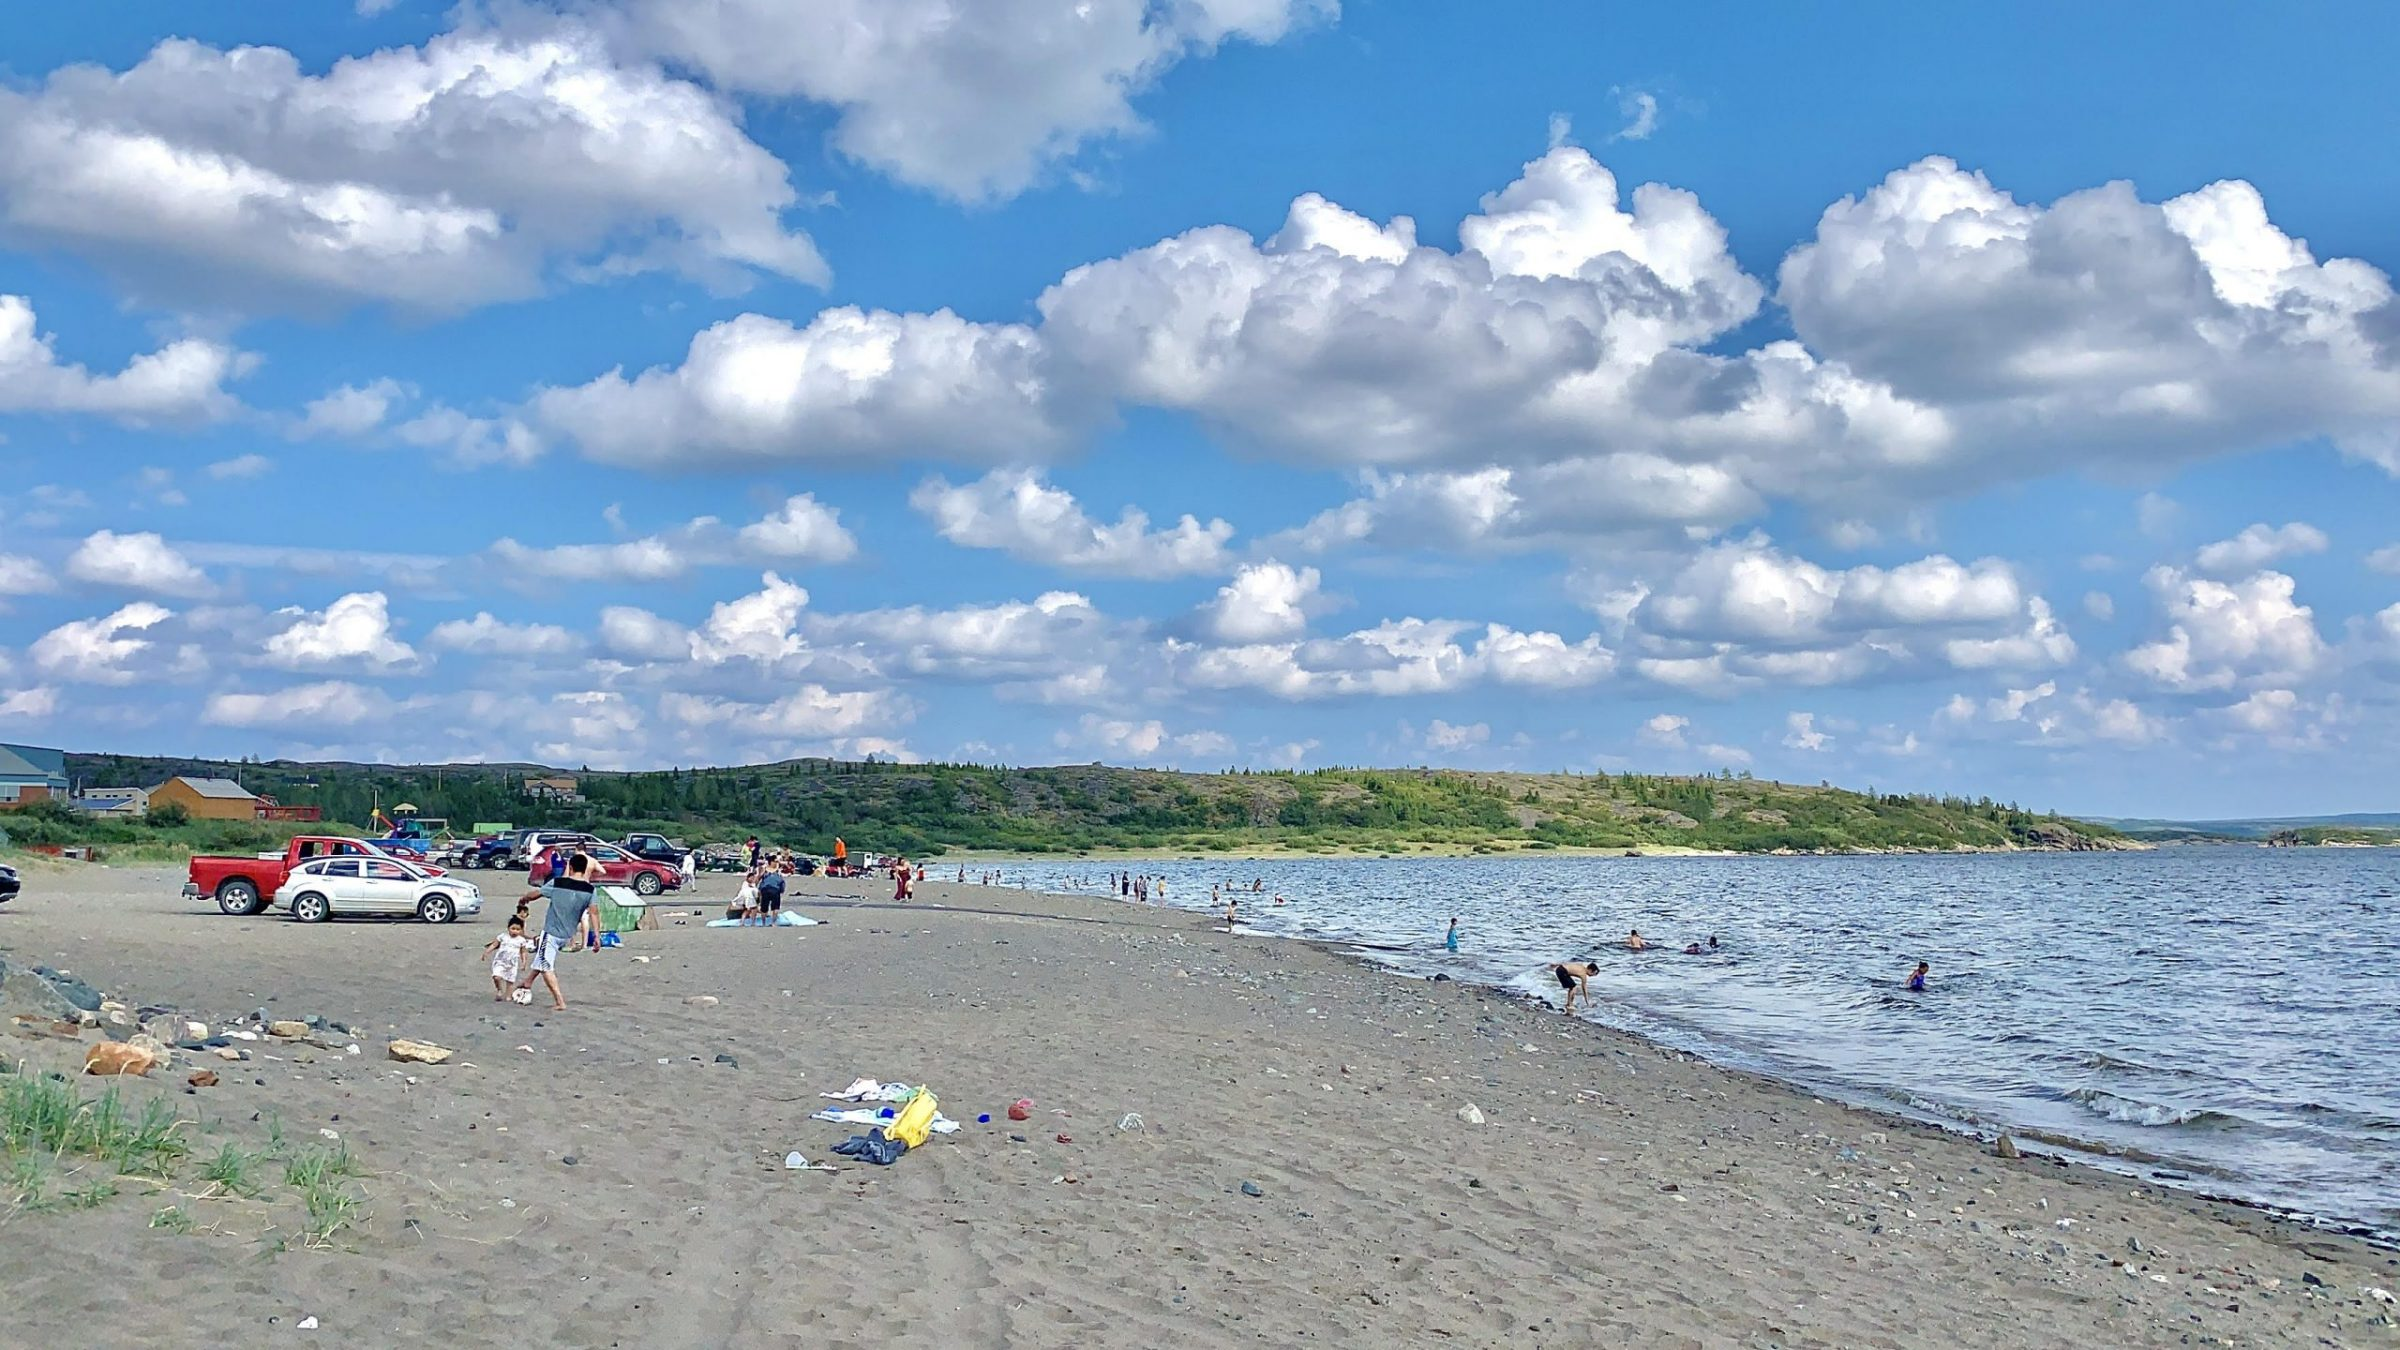 Temperatures in Kuujjuaq reached 28 C on Thursday with the humidex making it feel like 34 C, so community members retreated to the Kuujjuaq beach to cool down. (Photo by Malaya Qaunirq Chapman)